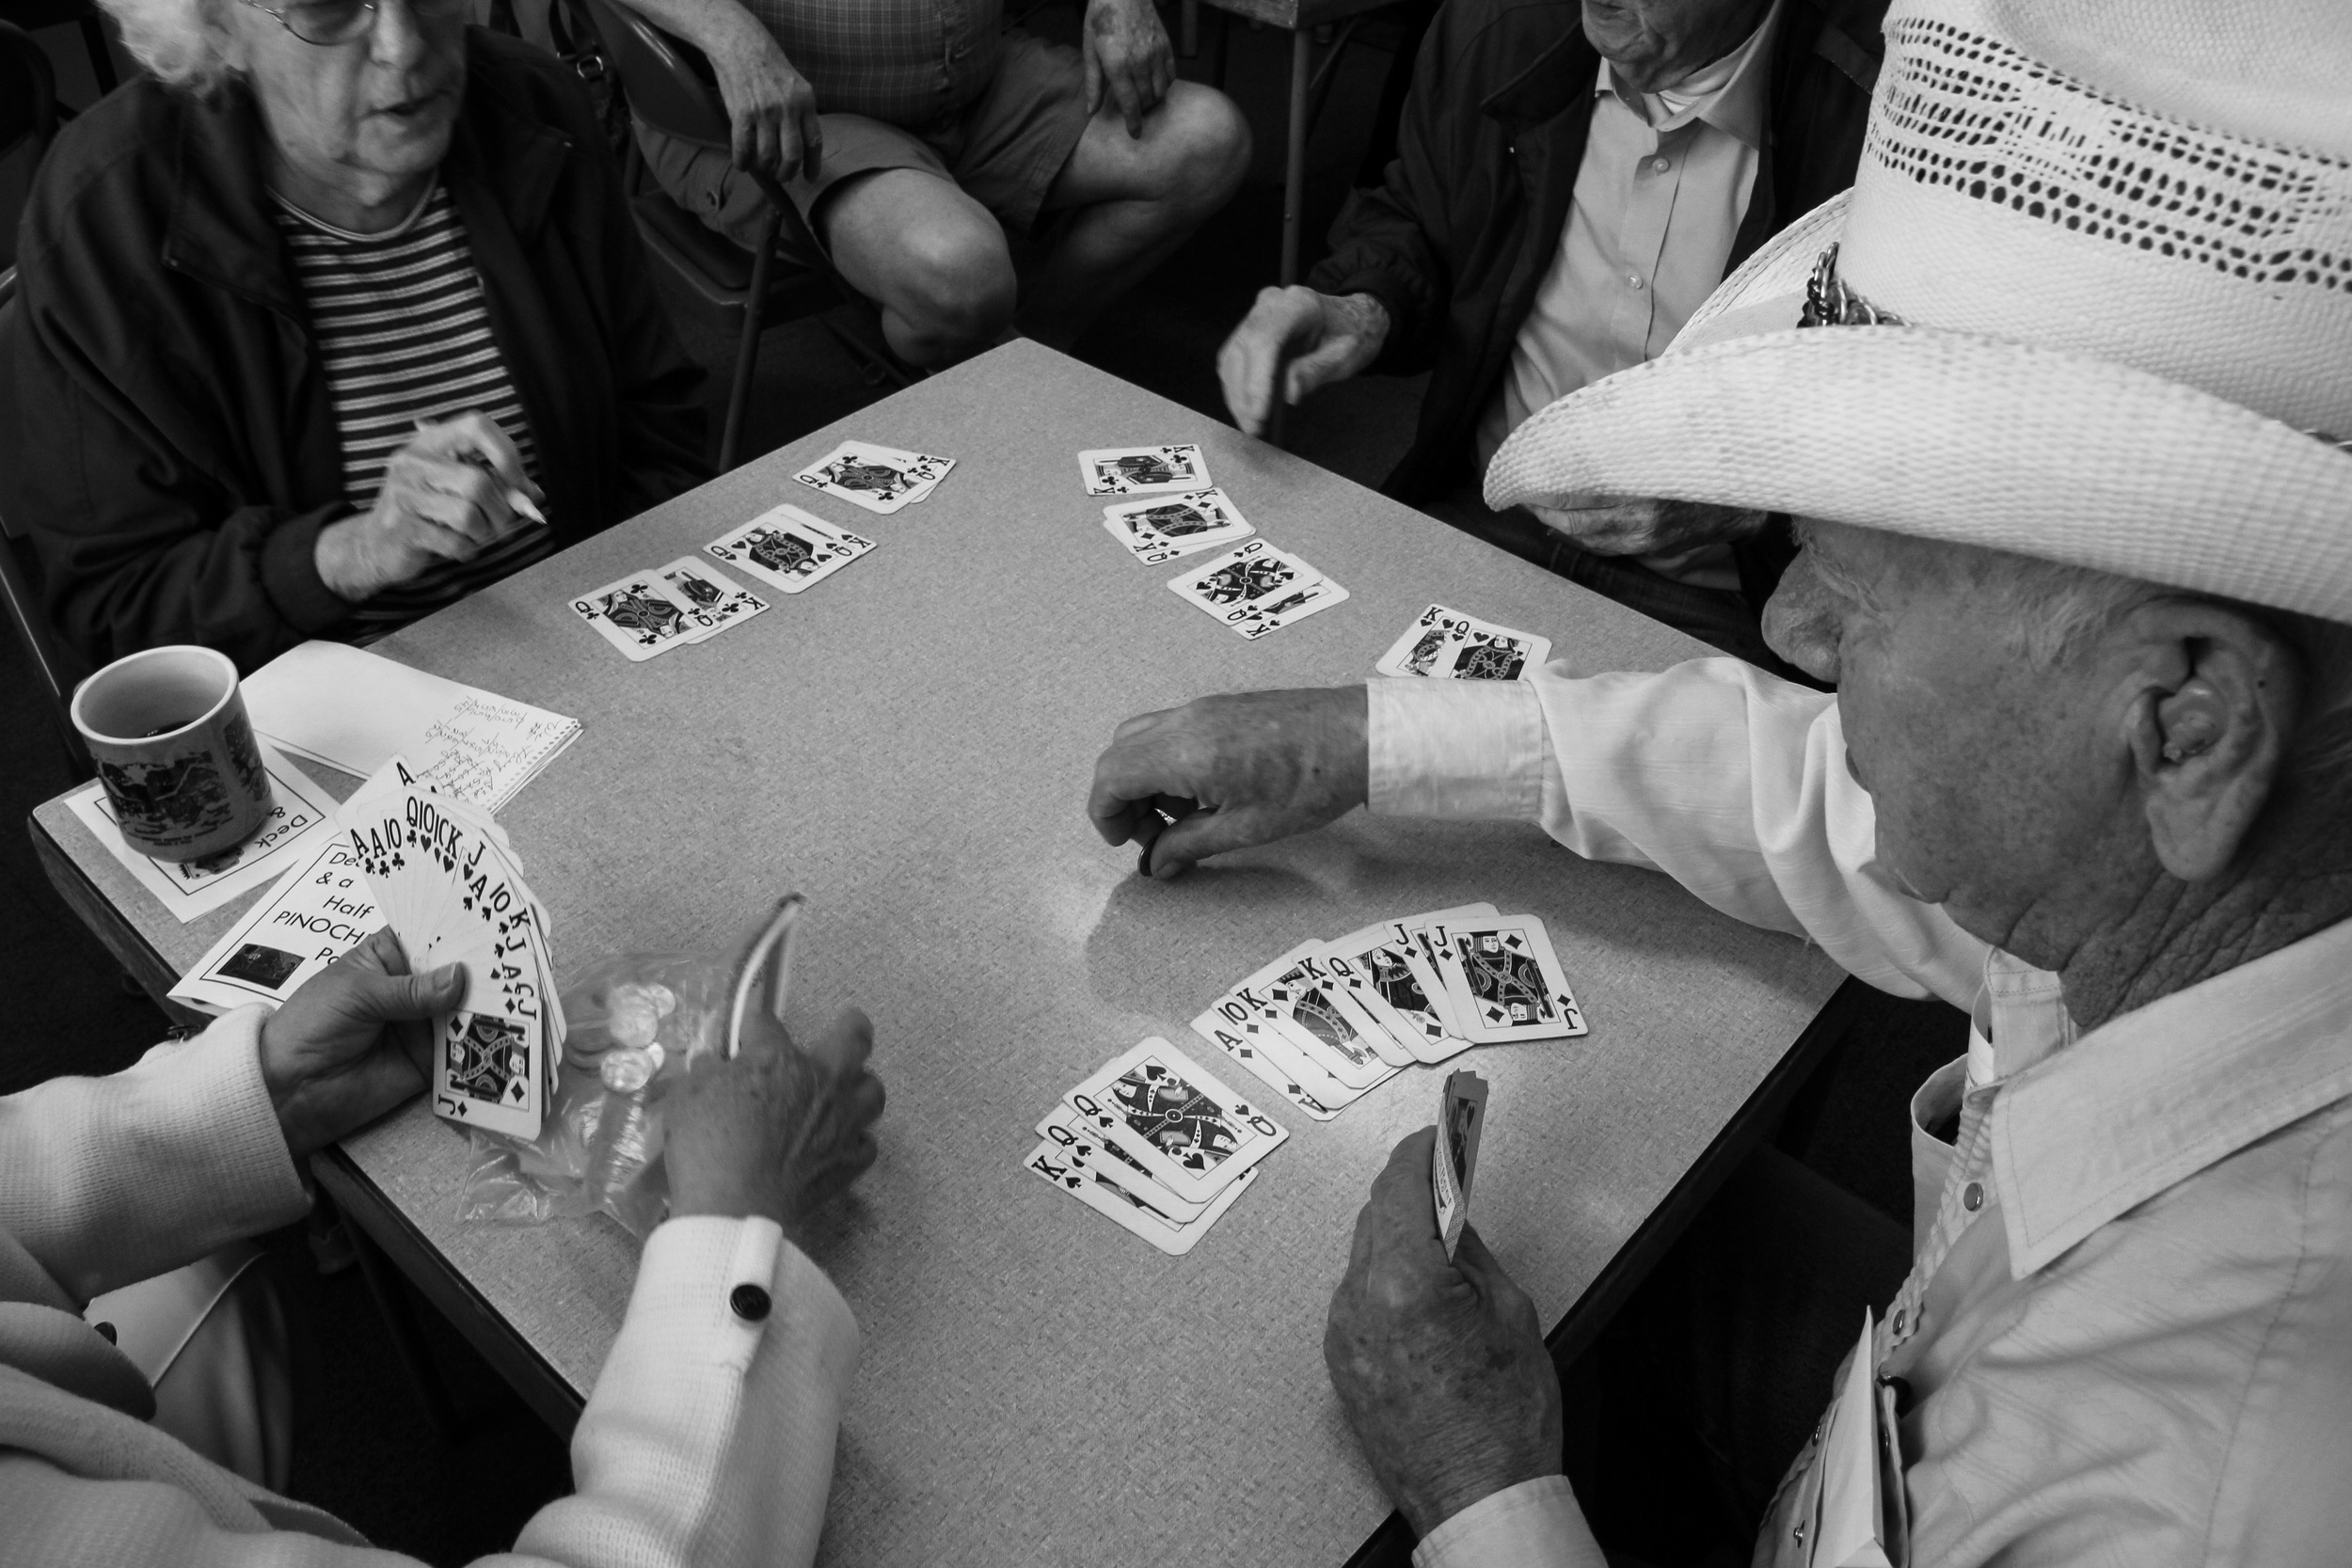 """Raymond Snook dons a cowboy hat while playing a game of Pinochle with Ralph Carmichael and other members at the senior center. """"They call me Cowboy,"""" Snook said. The Pinochle players laugh and crack jokes as they play a few hands every Monday, Wednesday and Friday."""